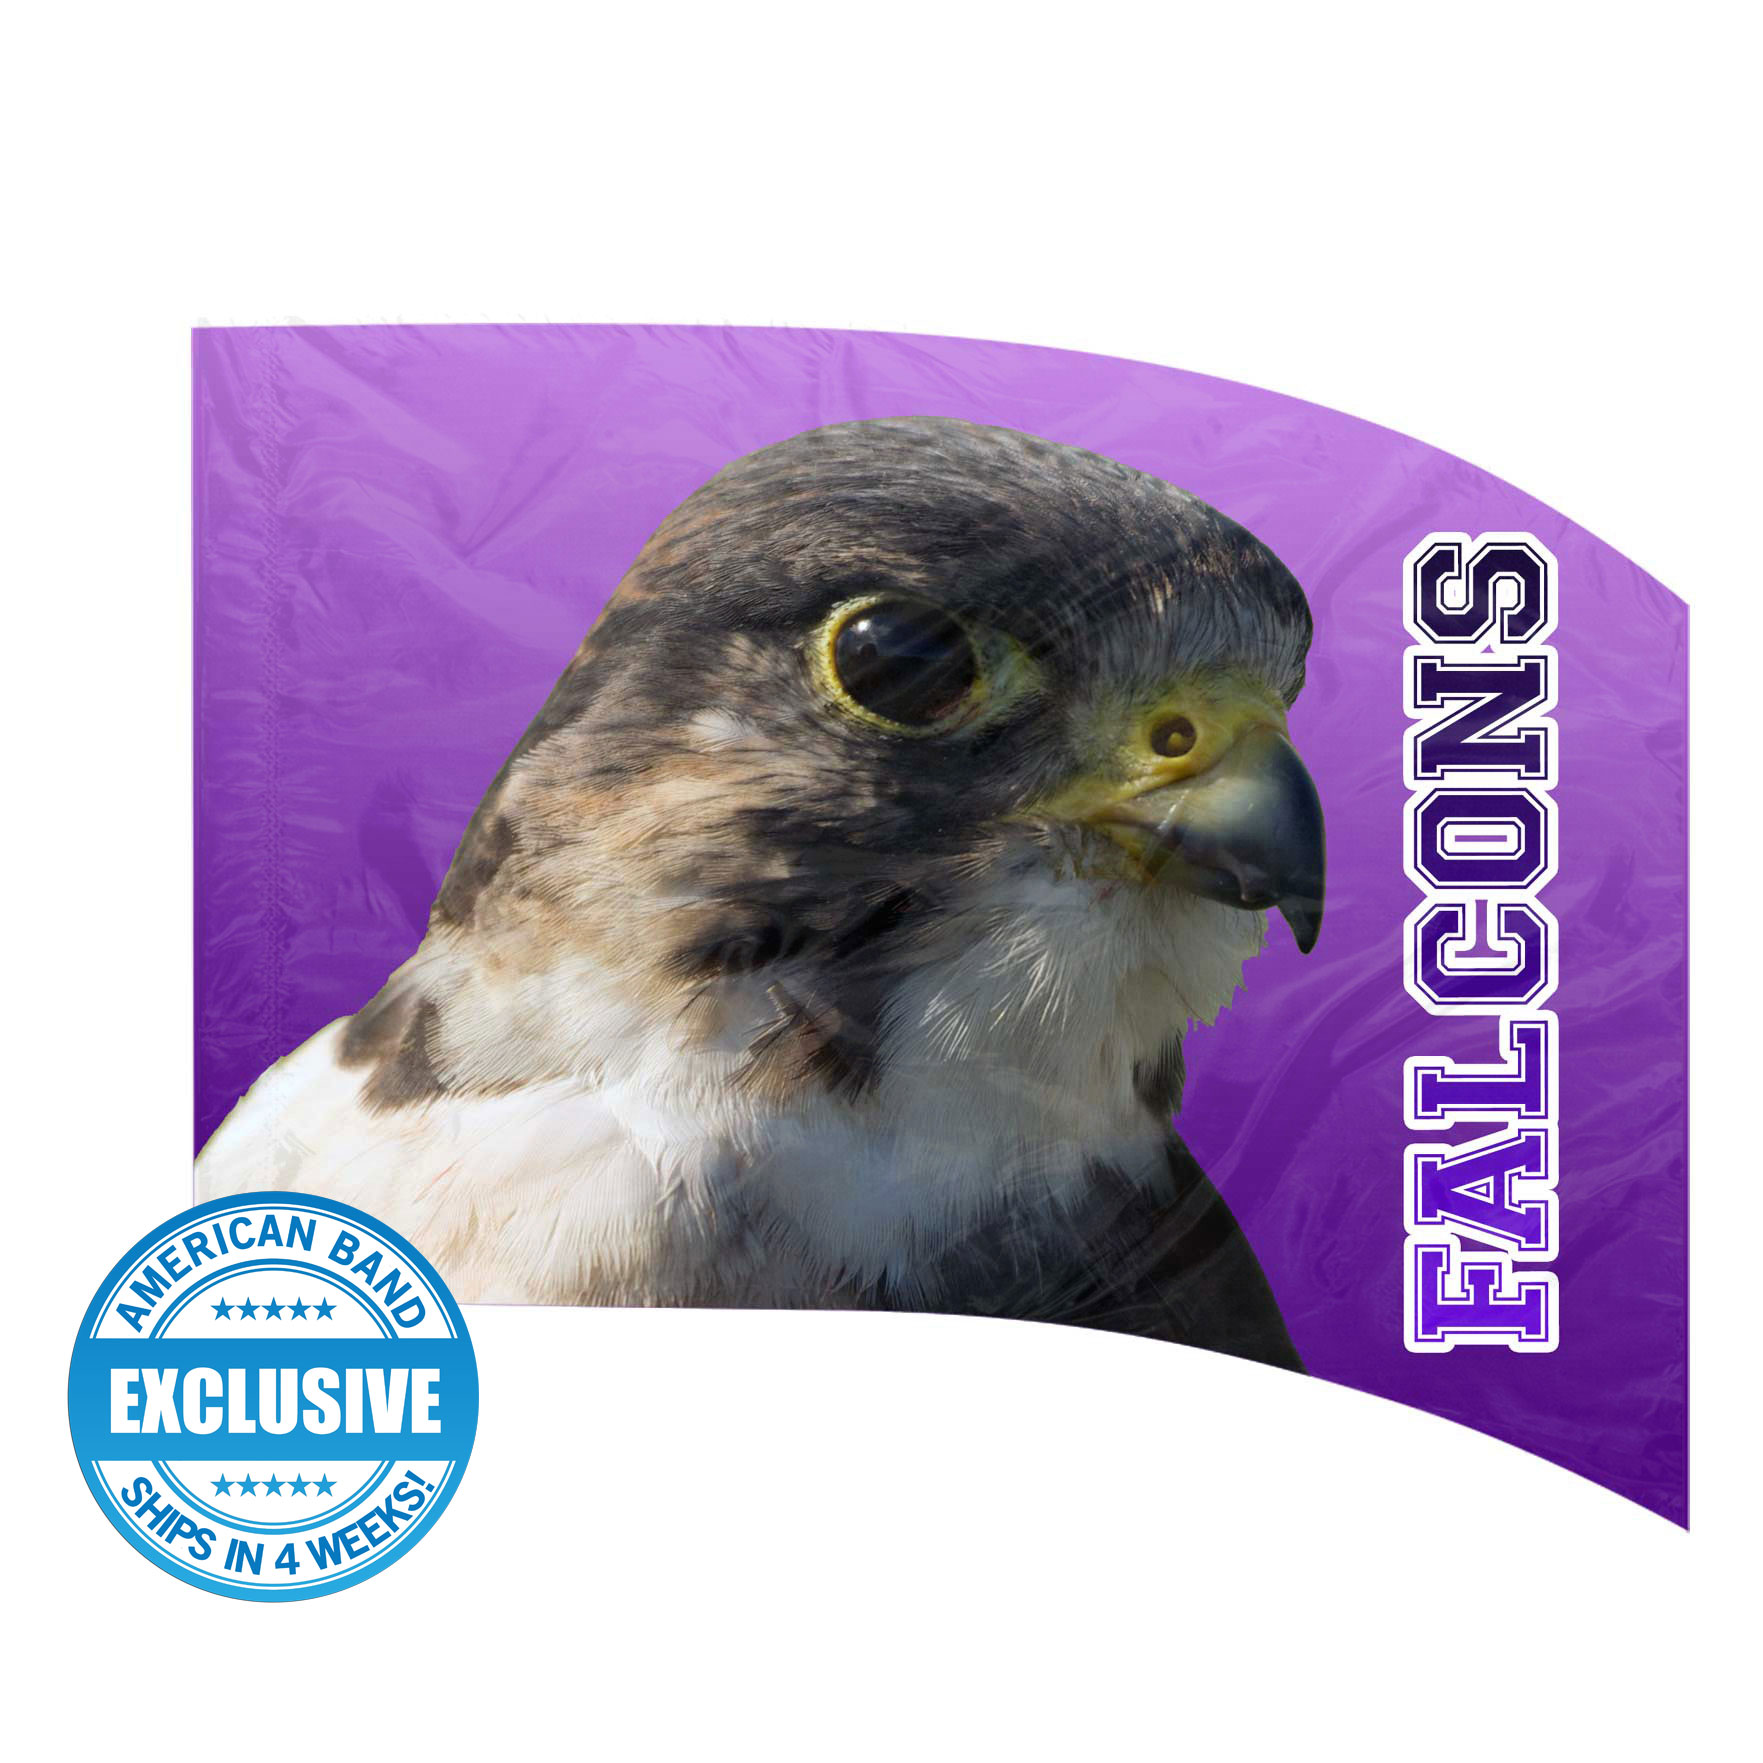 Made-to-Order Digital Mascot Flags - Falcon